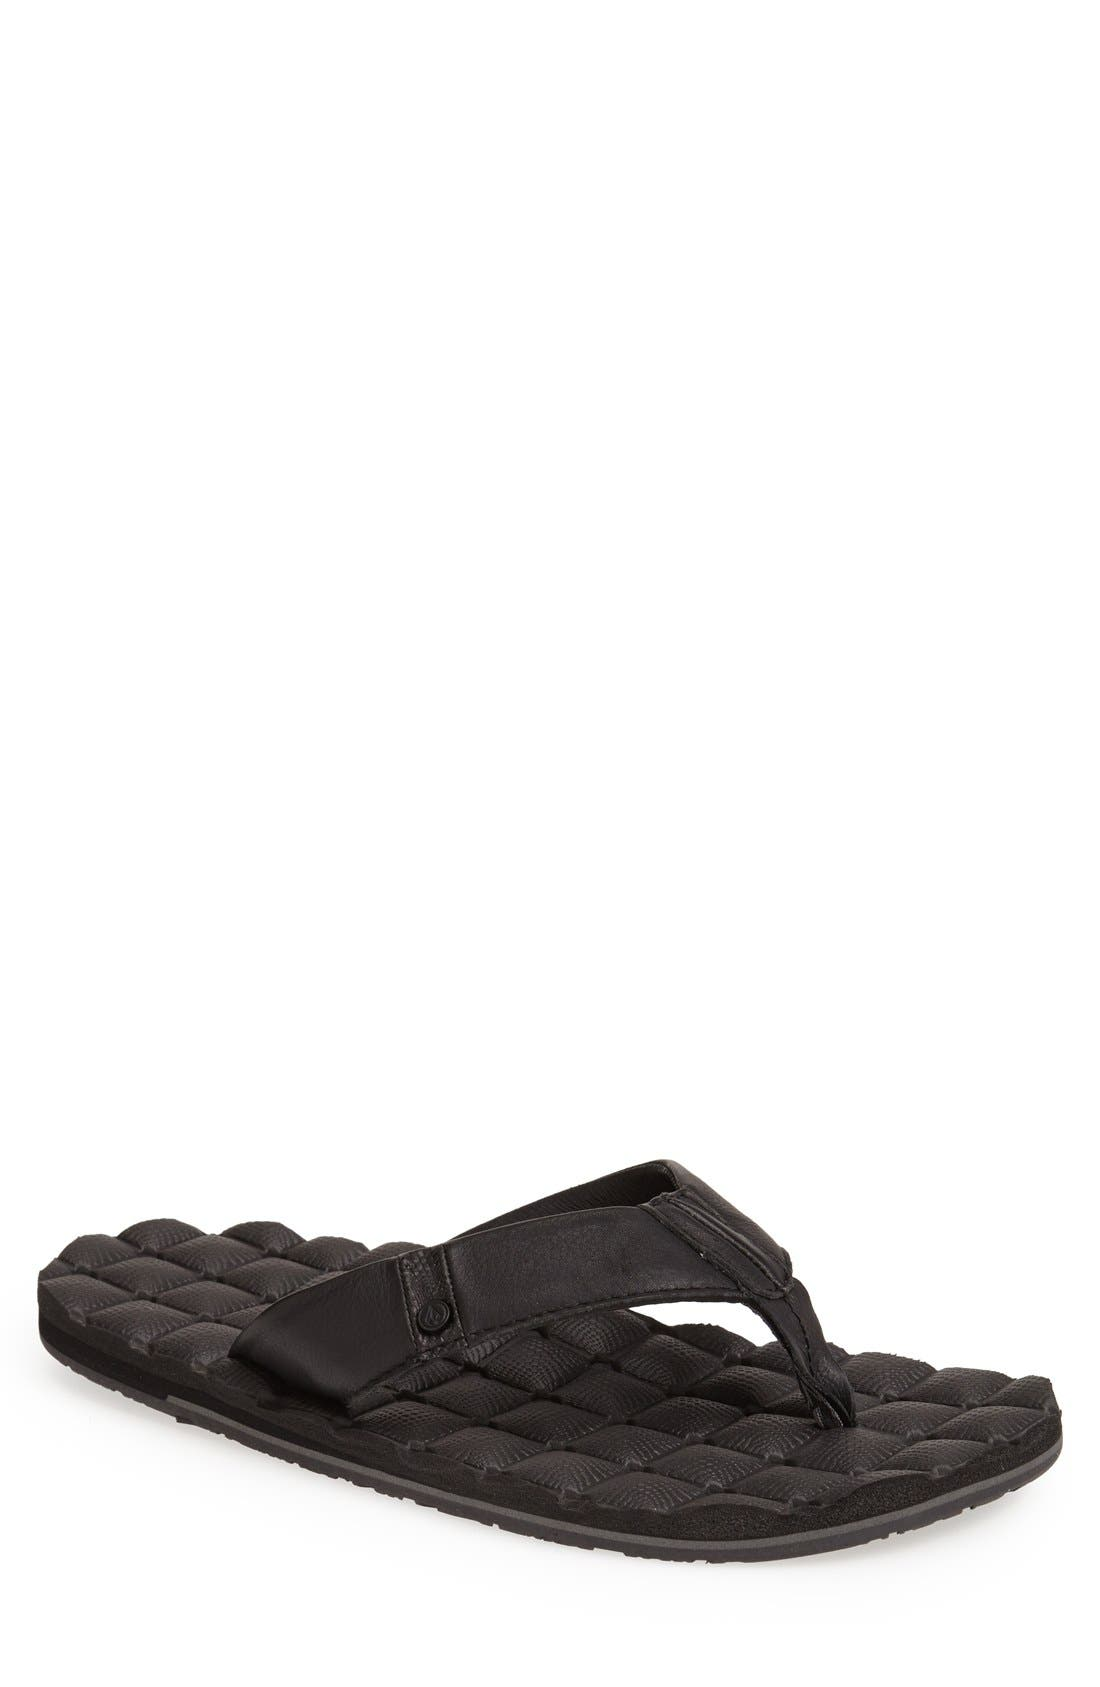 Alternate Image 1 Selected - Volcom 'Recliner' Leather Flip Flop (Men)